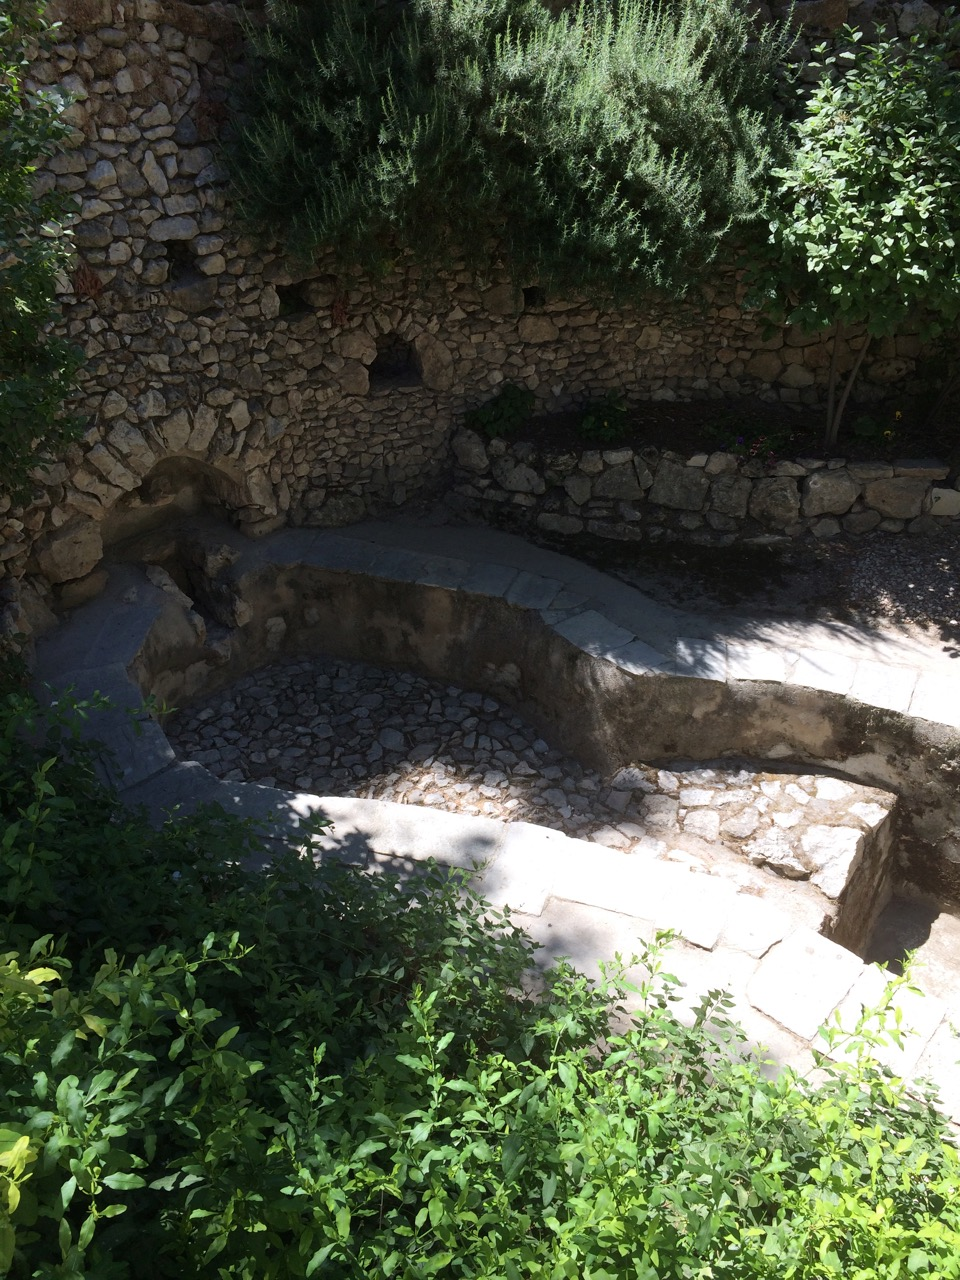 The Wine Press near the Garden Tomb, Jerusalem